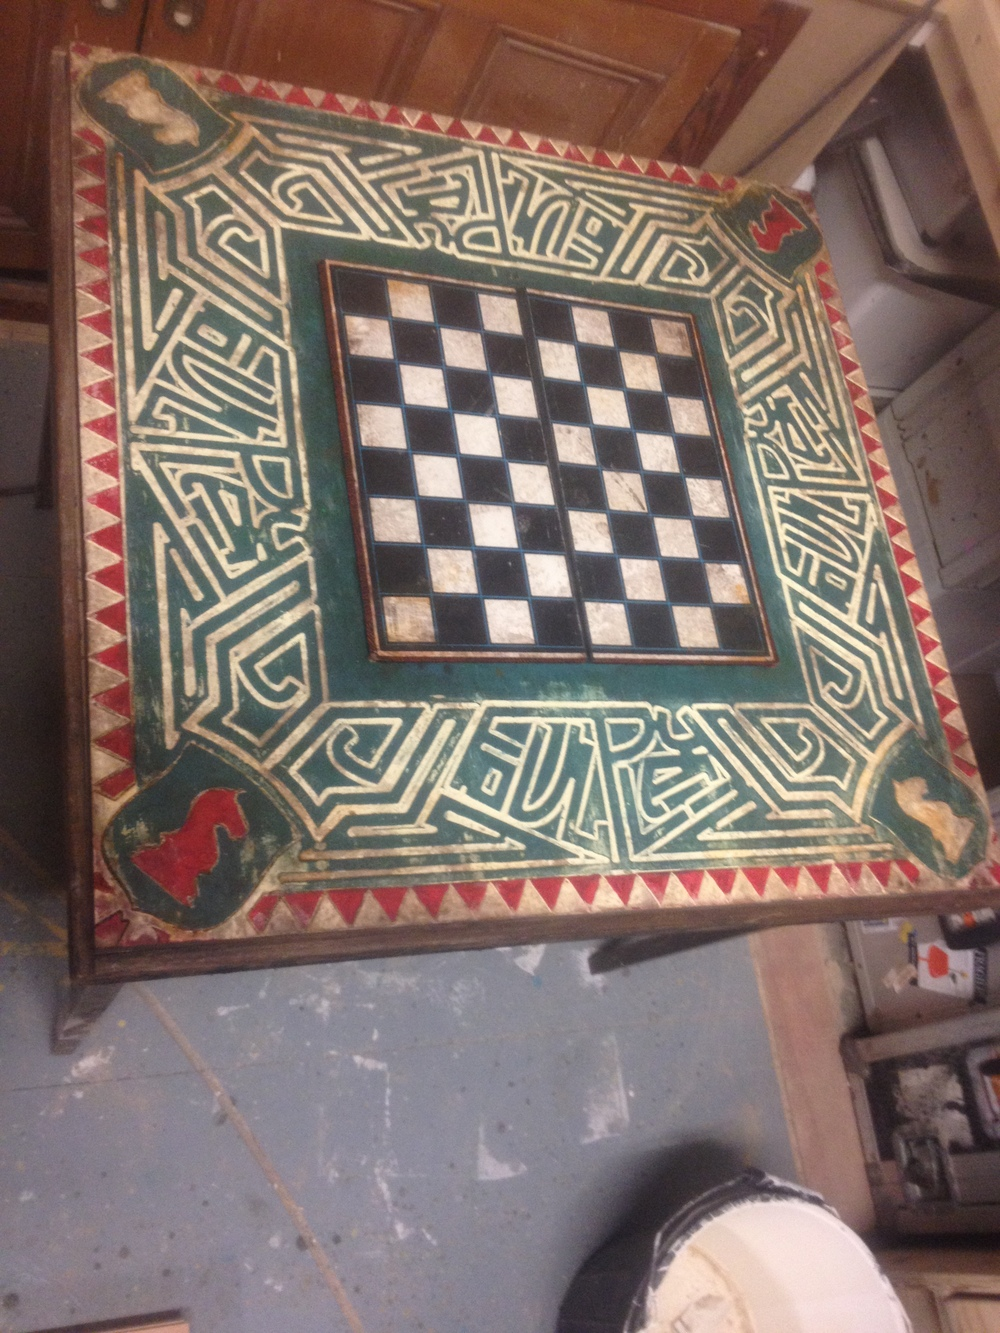 The deliciously decadent FoulPlay Chess Table carved into 7-ply by Tandem Set & Scenery, decorated by Jack Stigner and designed by Ulysses Black